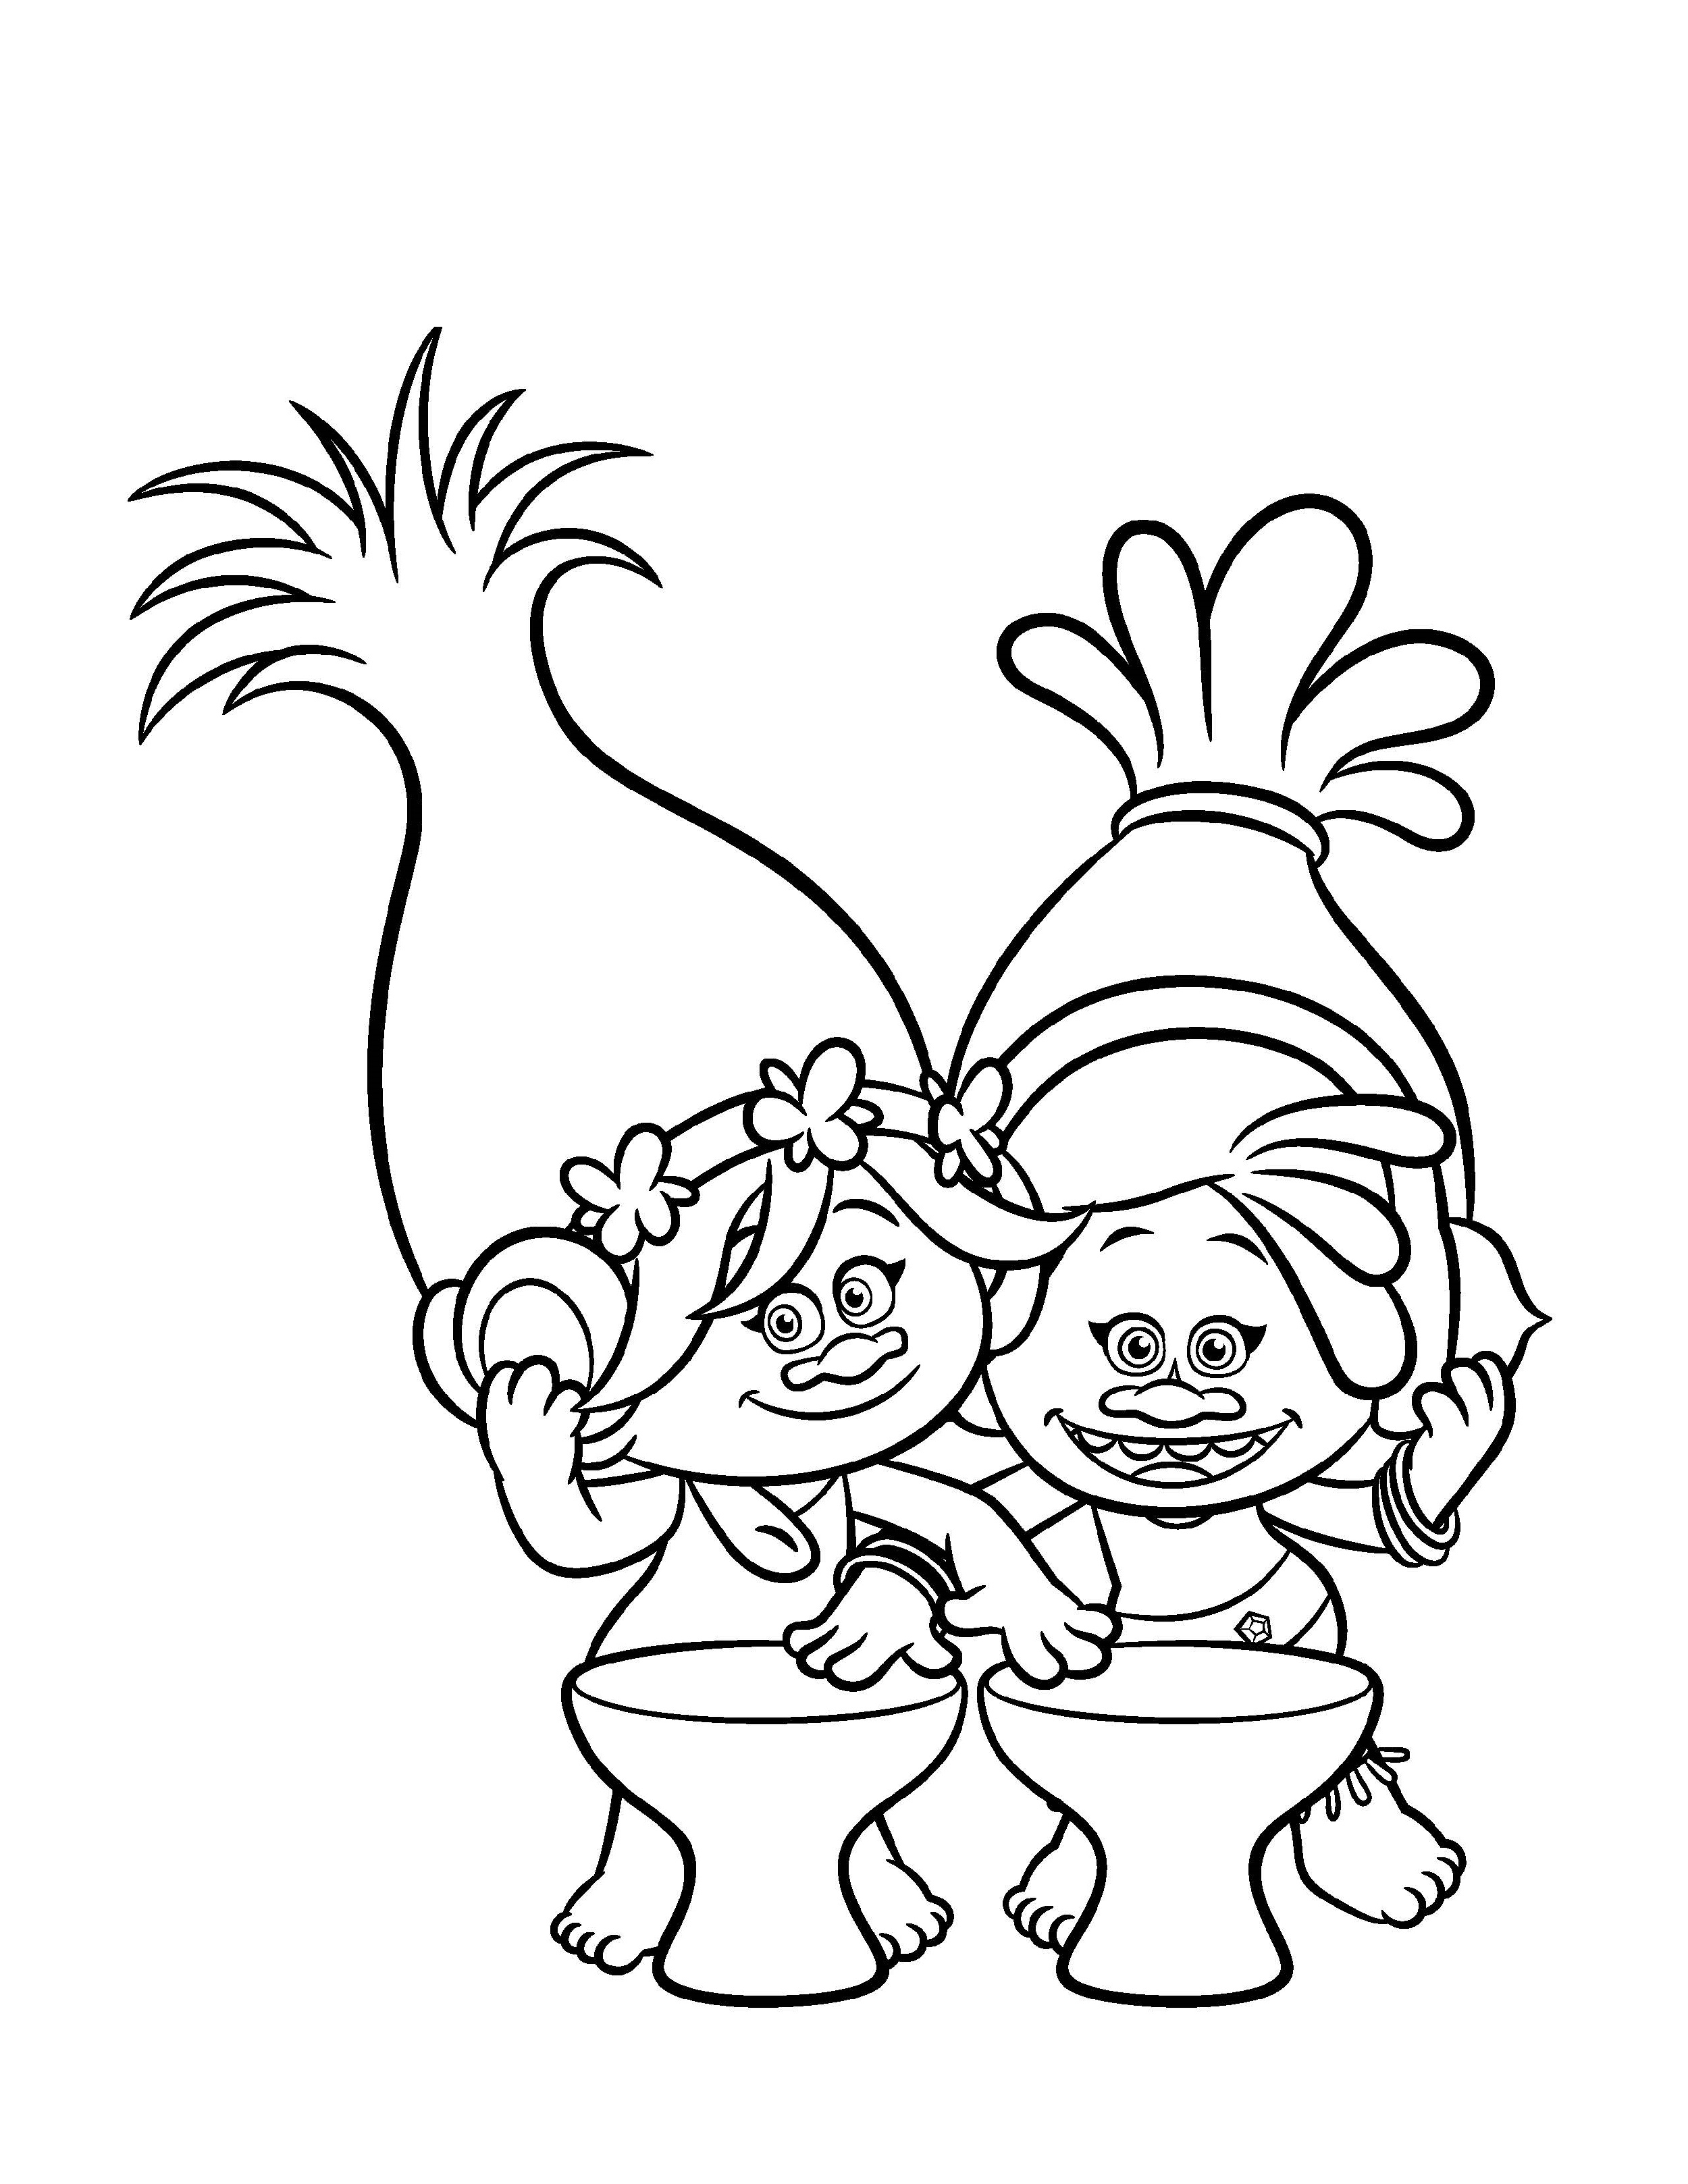 Princess Poppy Coloring Page For All Themes